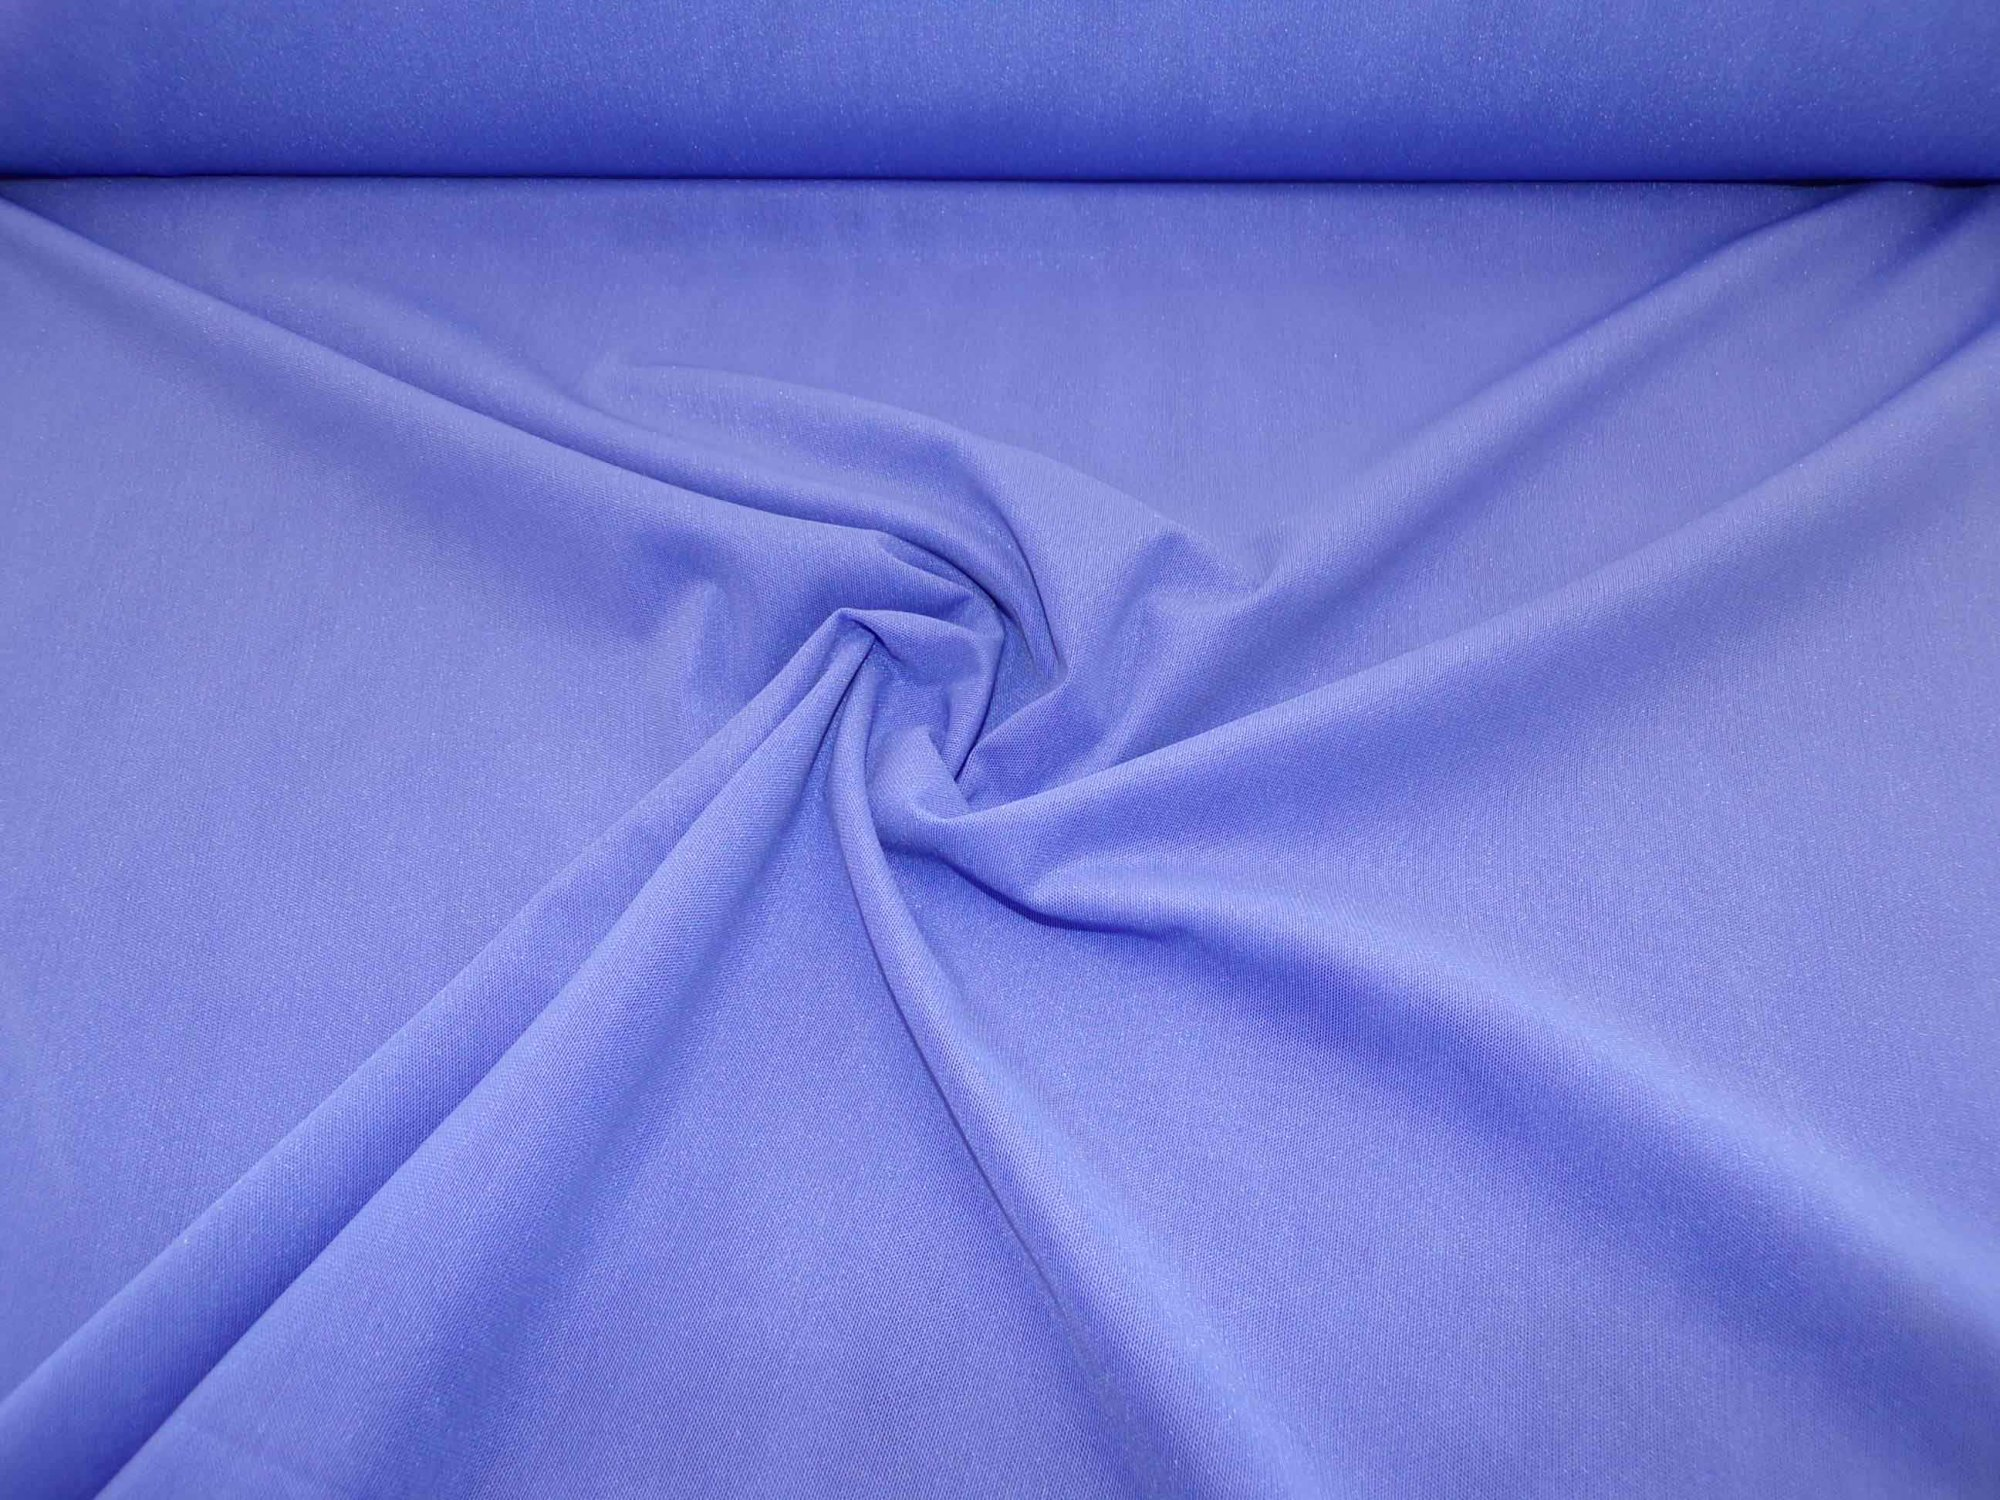 Soft Mediuweight Powernet - Periwinkle